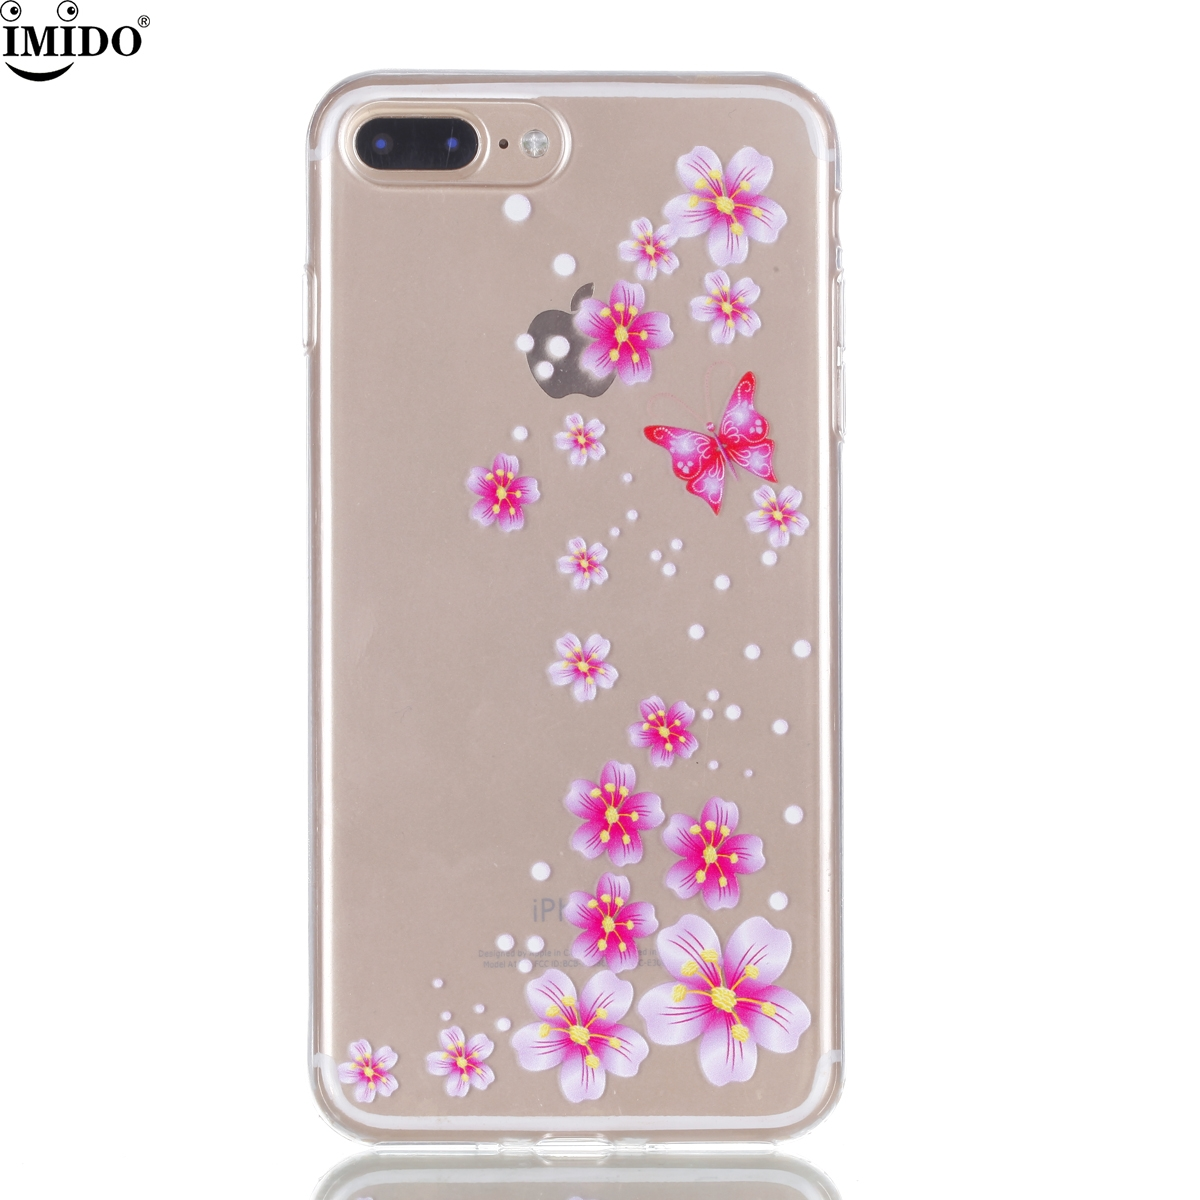 For iphone 7 plus Cover Case iphone 7plus Coque Transparent TPU Cover iphone7plus Capa para iphone 7 phone case